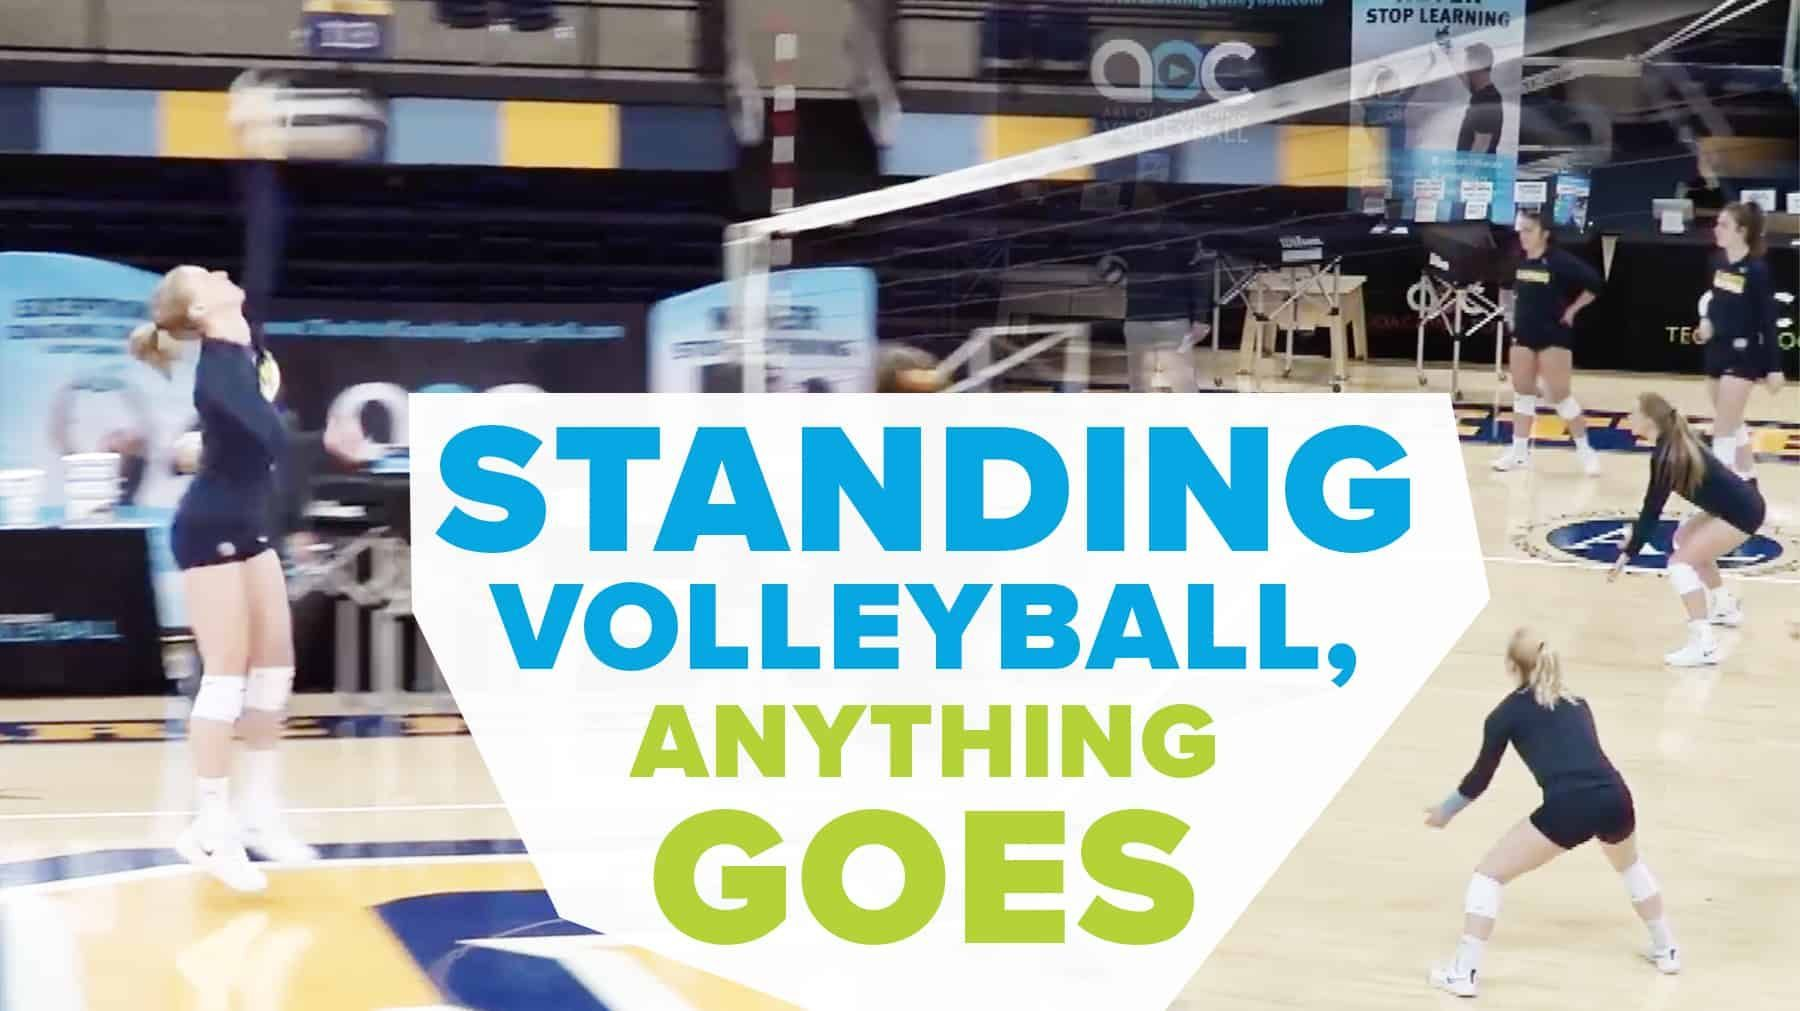 Standing Volleyball Anything Goes Except Jumping The Art Of Coaching Volleyball Coaching Volleyball Volleyball Volleyball Workouts